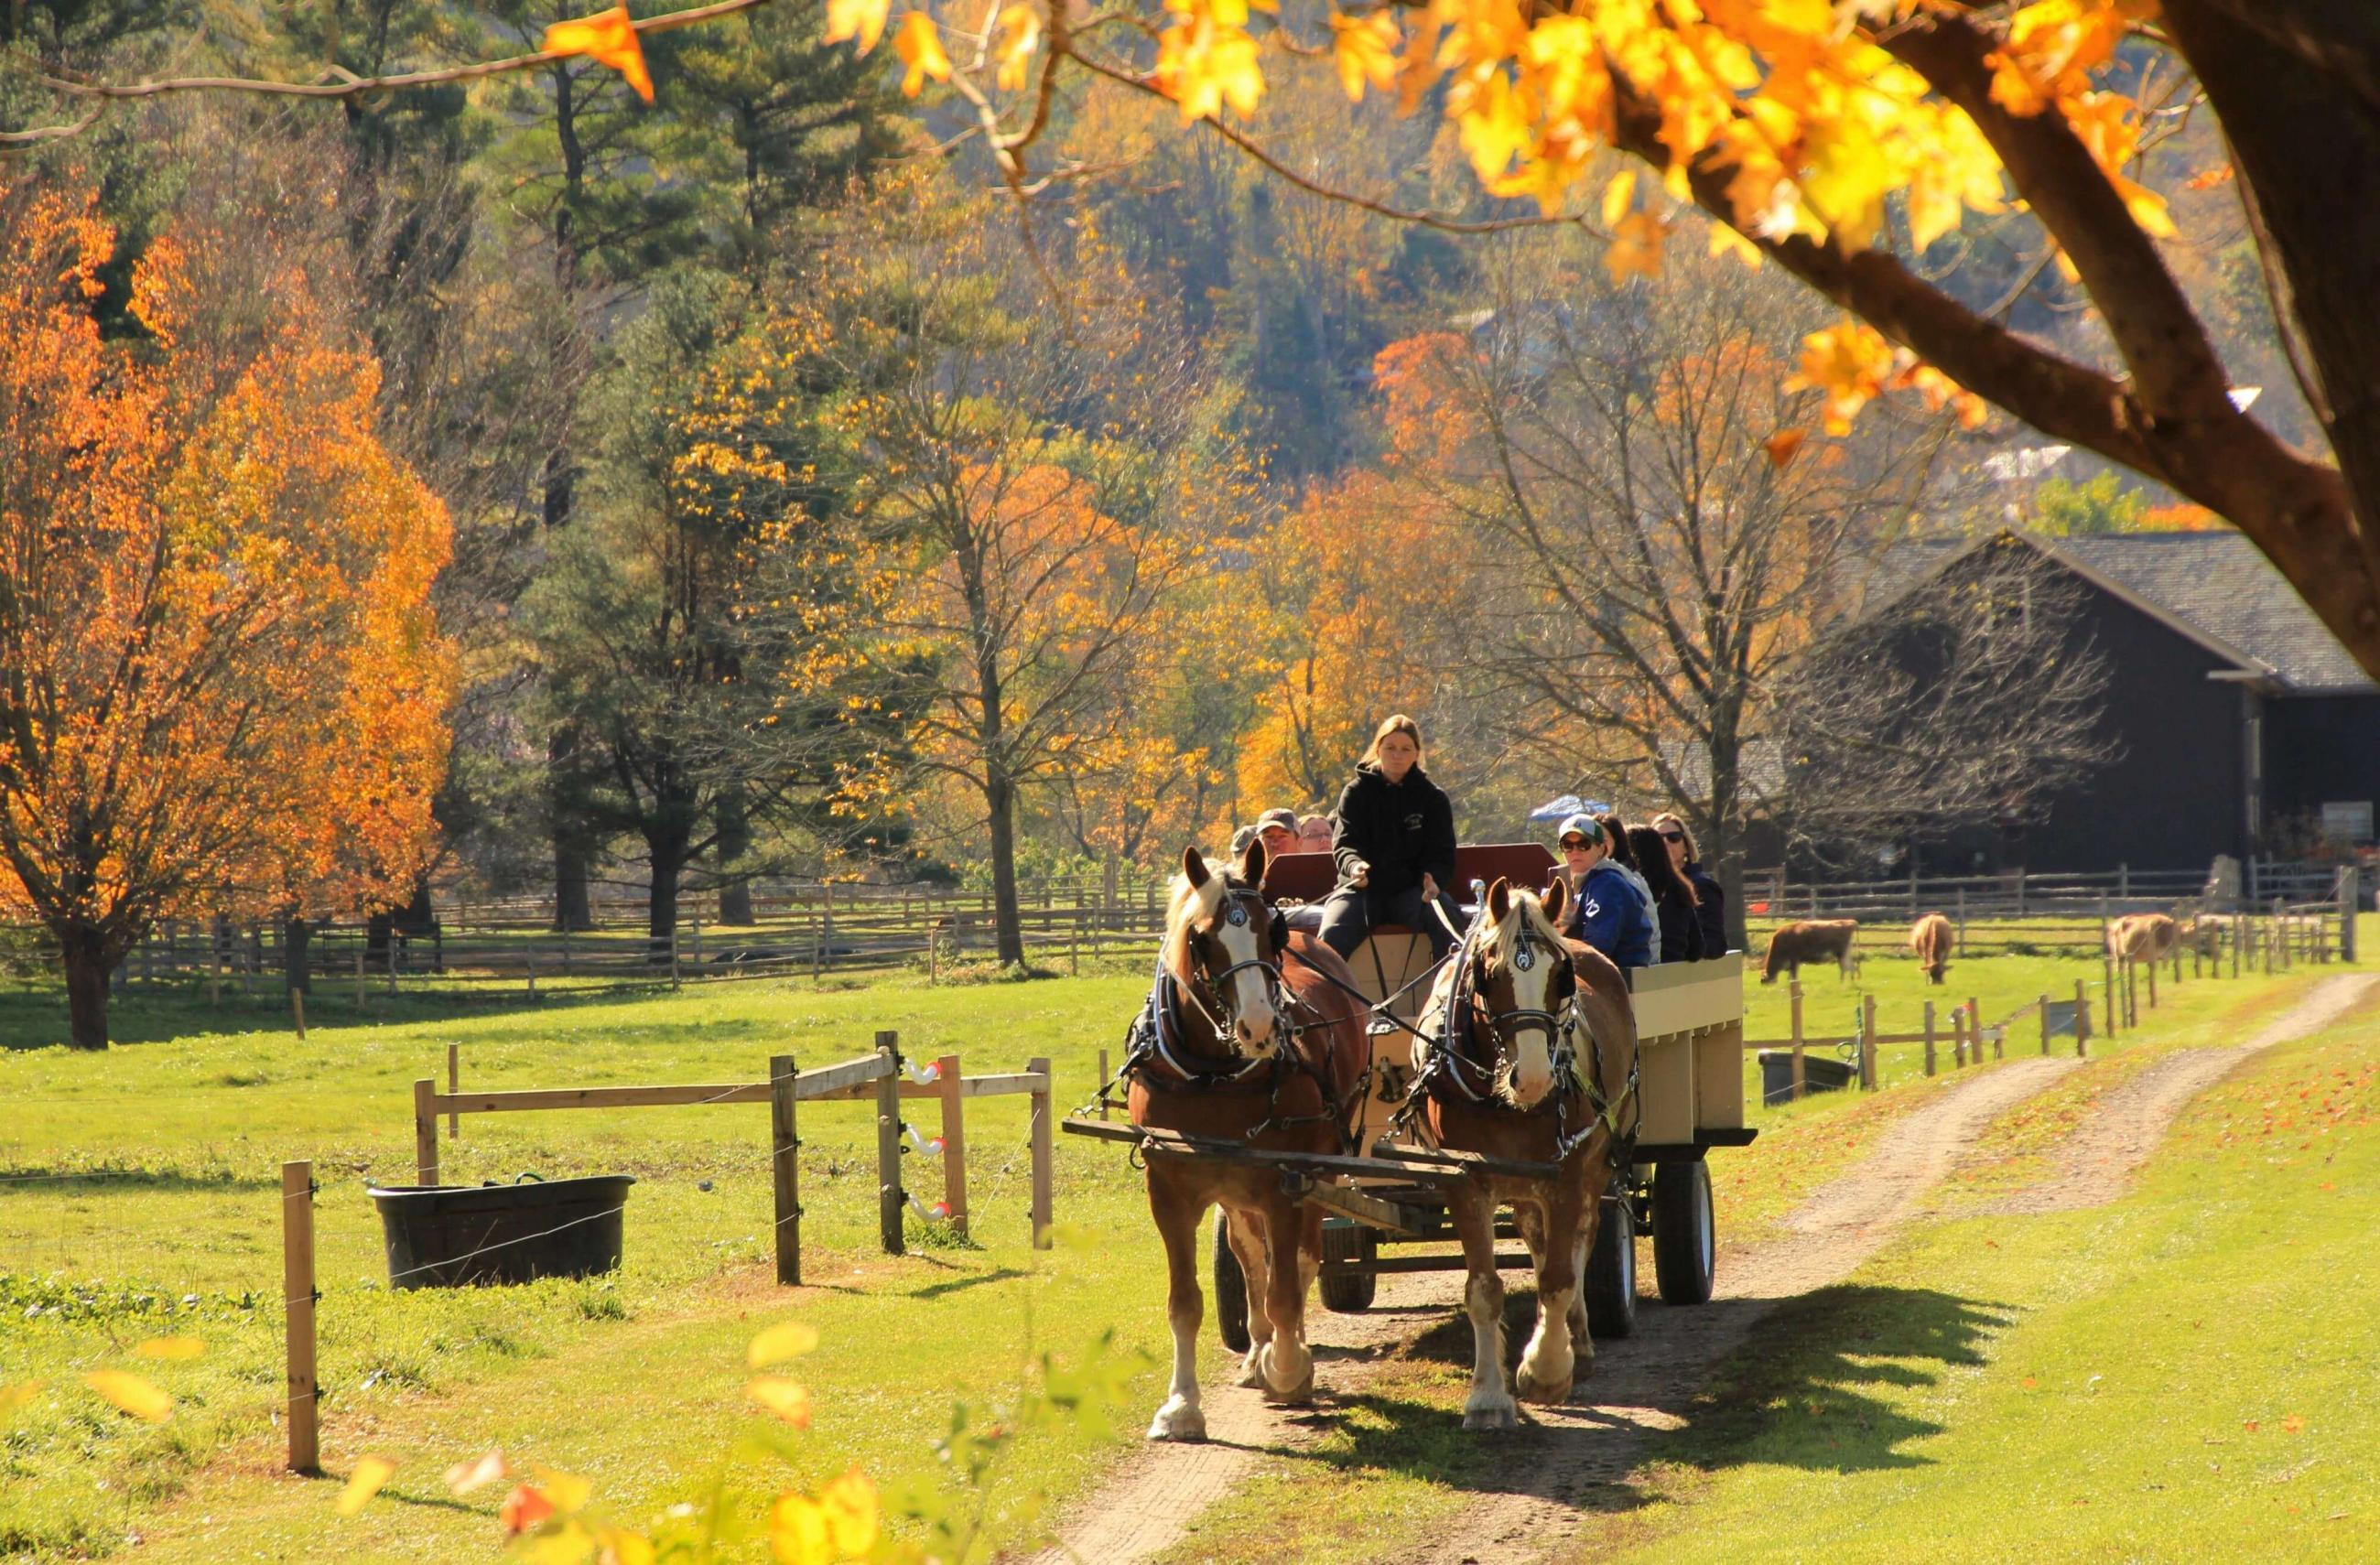 A Photographer S Guide To Perfecting Your Fall Foliage Snaps Woodstock Vt